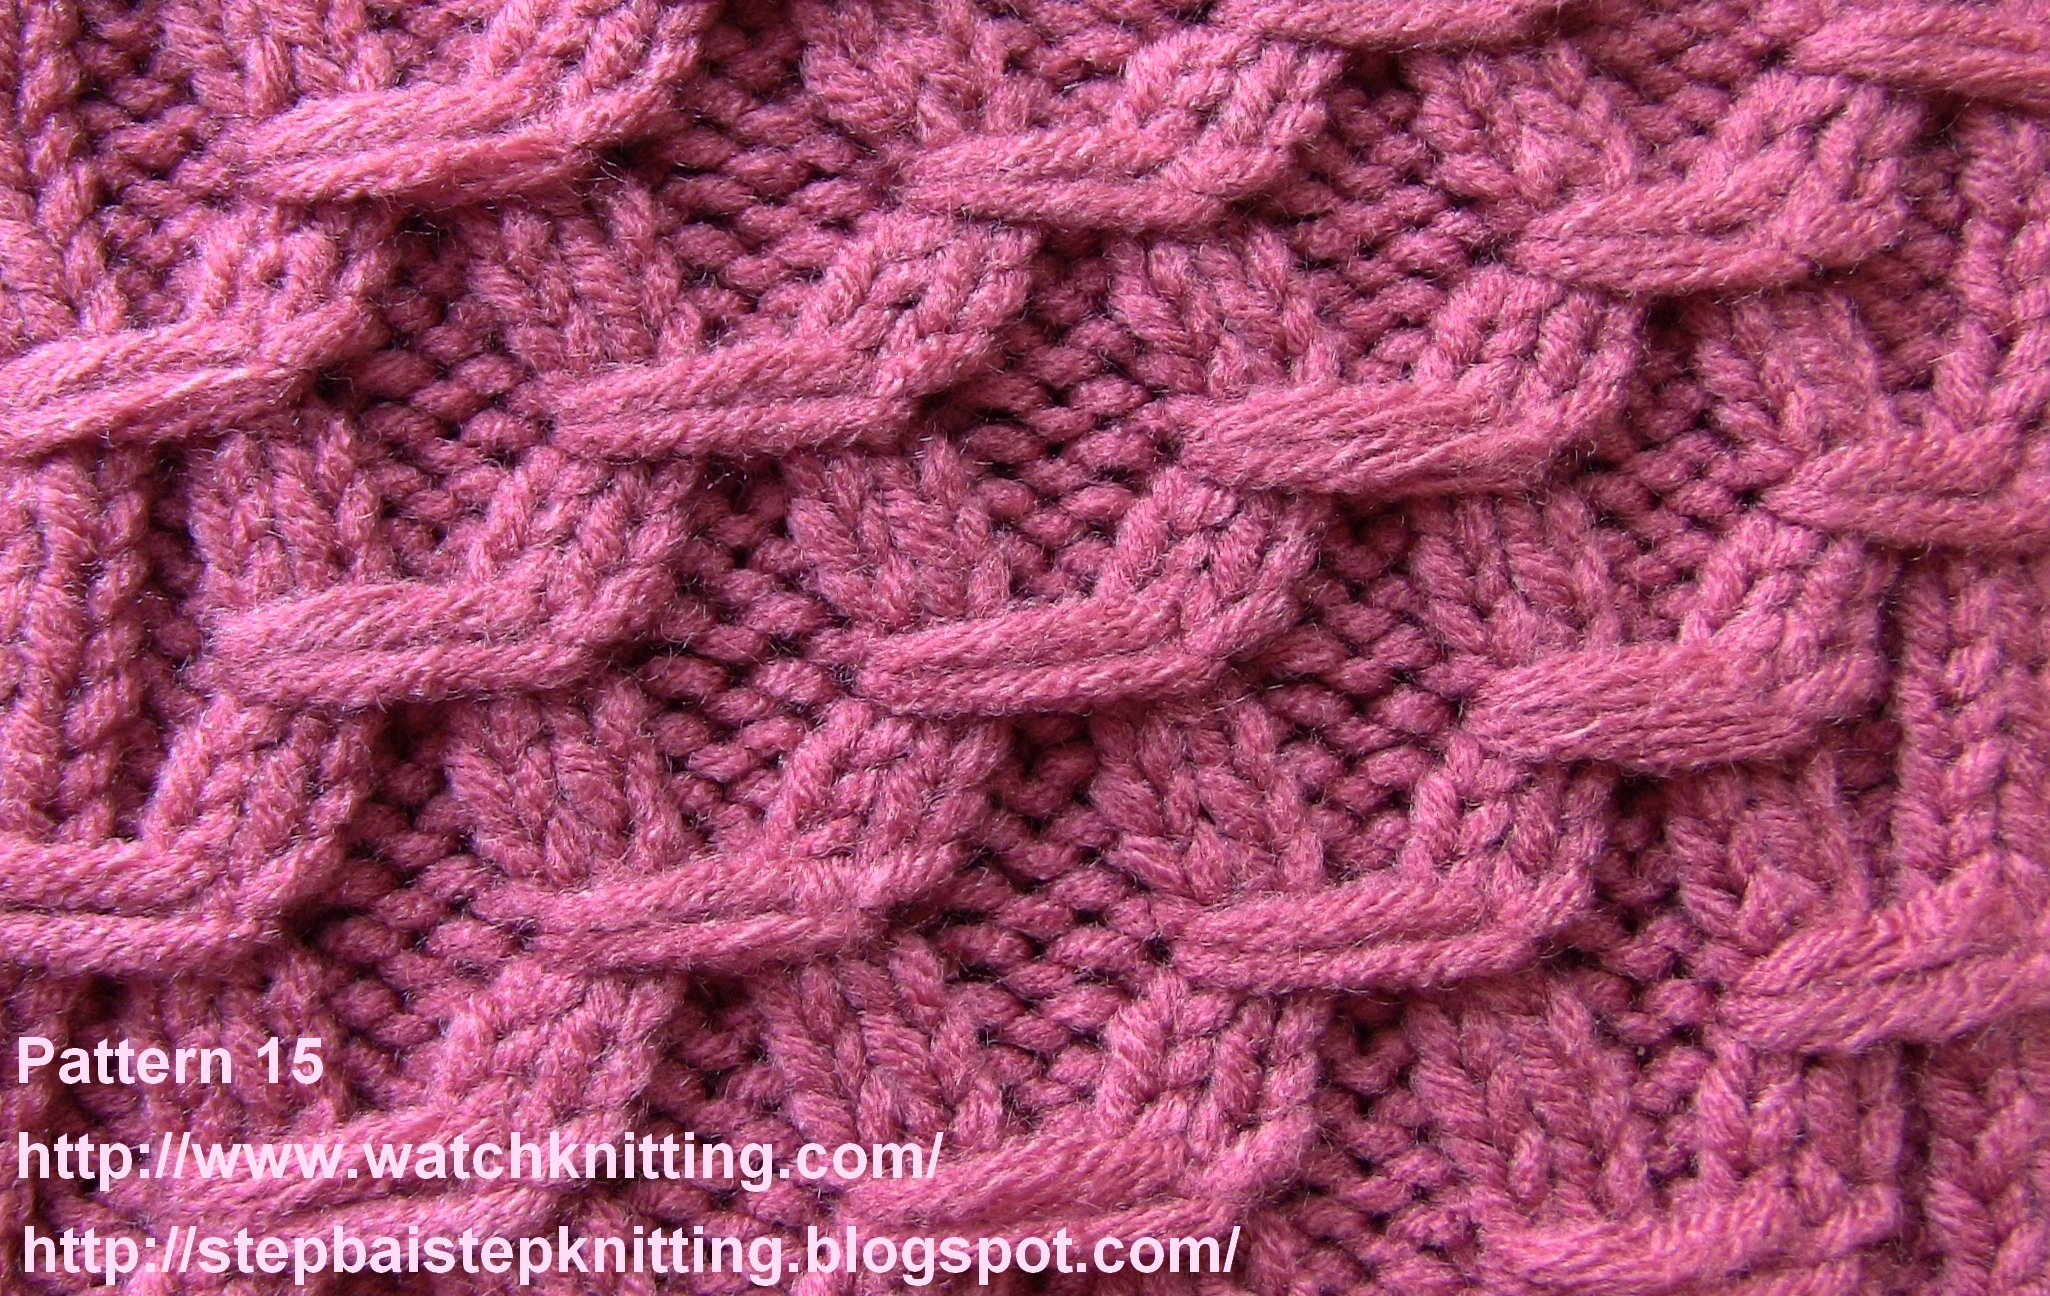 Knitted Patterns : Embossed Knitting stitches Watch Knitting